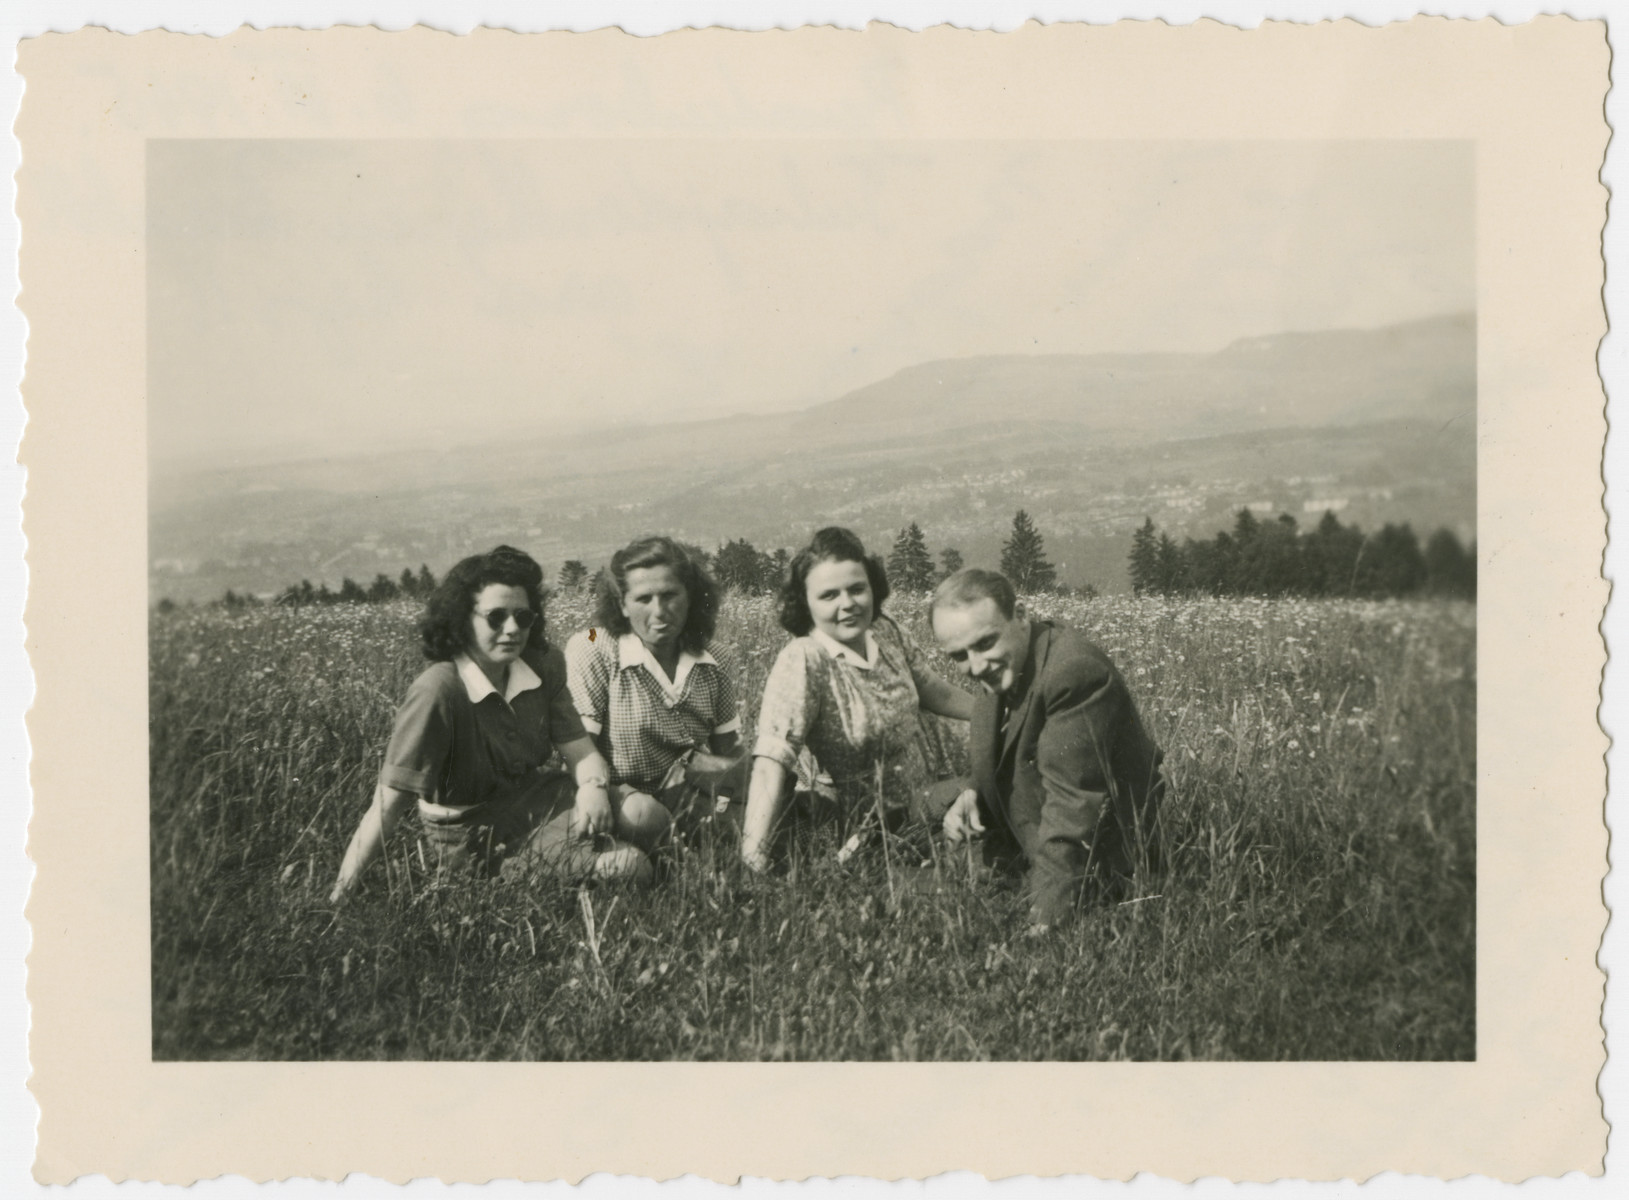 Four young people who had come to Switzerland on the Kasztner transport pose in a grassy field.  Eva Weinberger is seated second from the left.  Berta Davidovitz is pictured second from the right.  The inscription reads: Dear Eva: I am sorry I wasn't able to be with you on vacation.  I'm sending you this picture as a remembrance of three friends from Kibbutz Hamarichot.  I was with them in Bern on May 20, 1945. From your friend, Berta